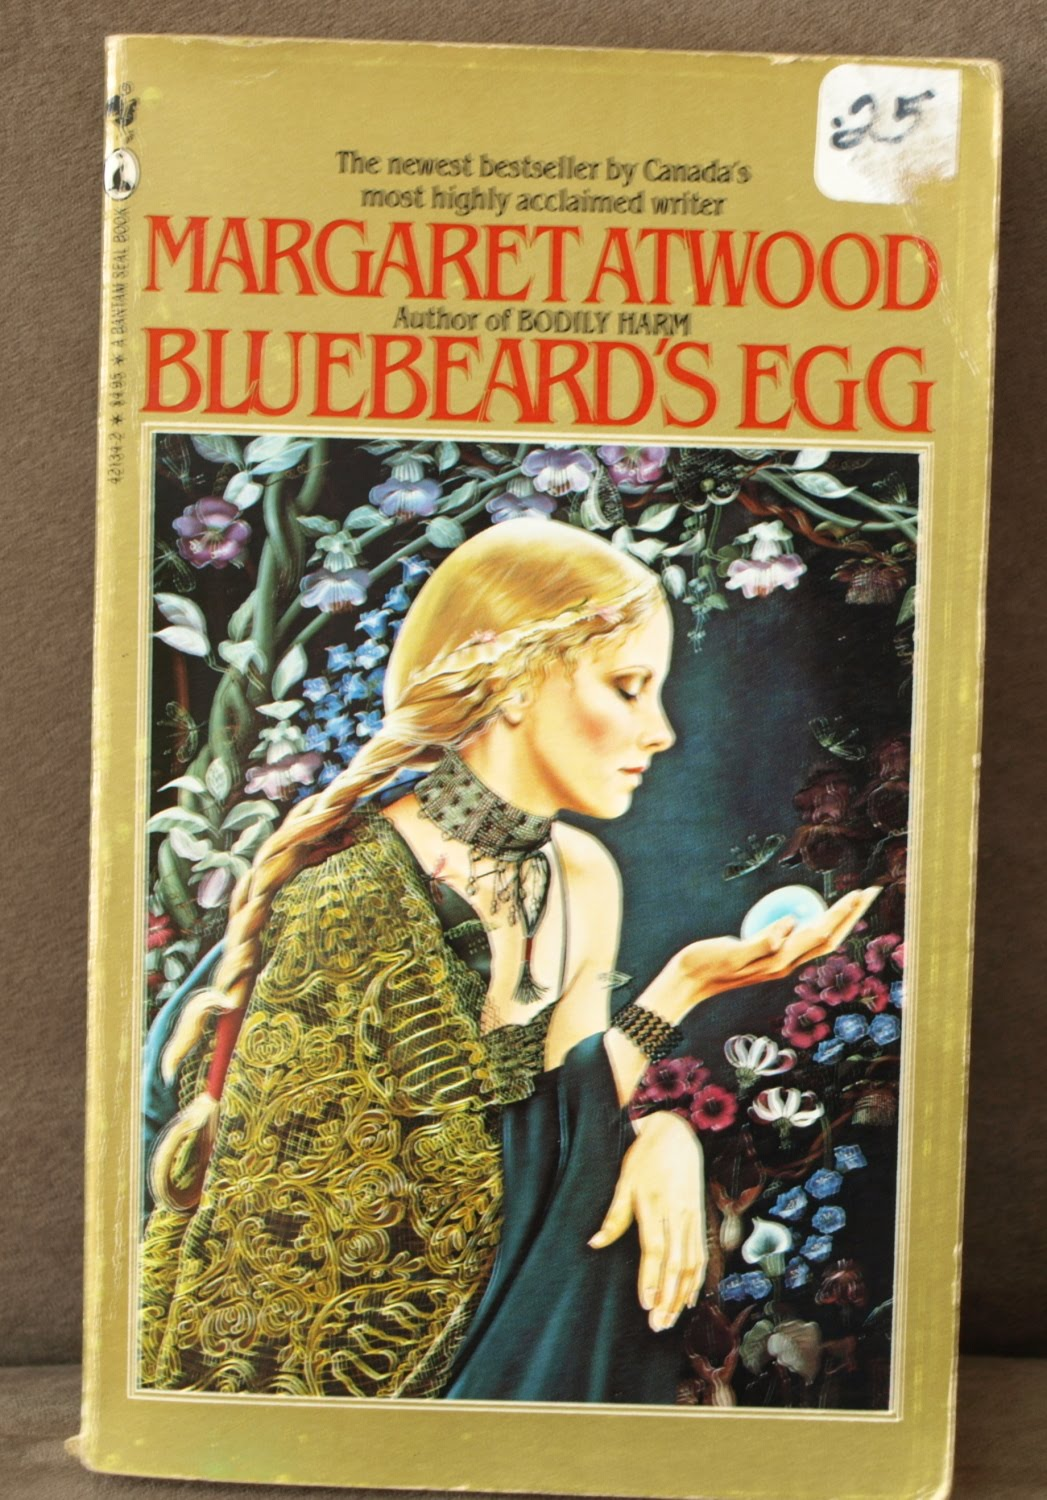 the theme of perception in bluebeards egg by margaret atwood